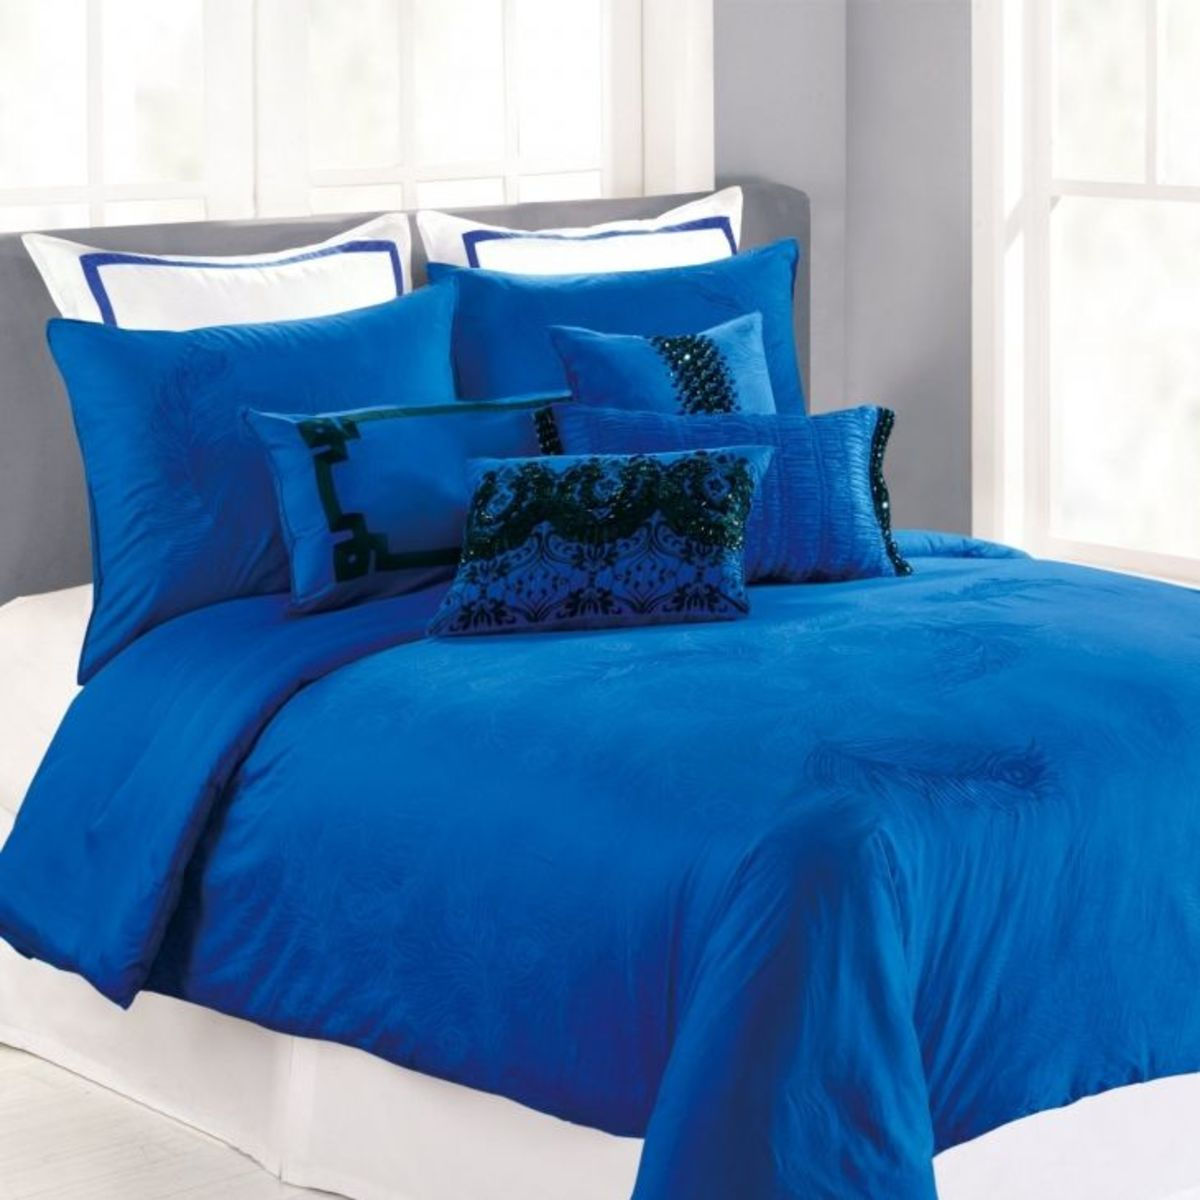 Cobalt Blue Bedding & Comforter Sets